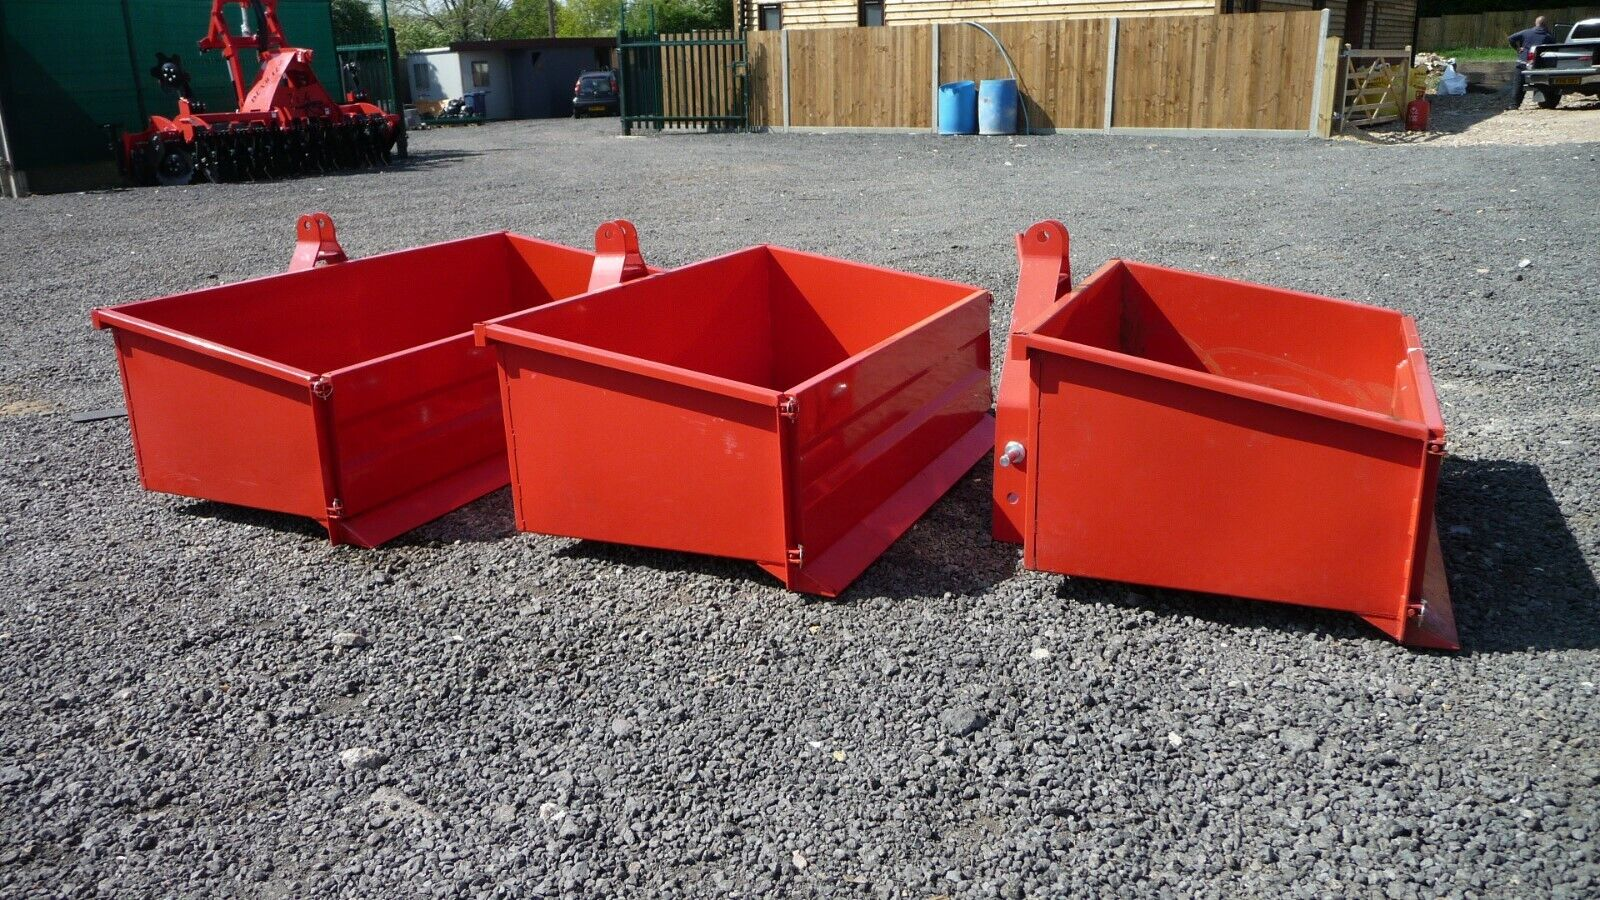 COPMACT TRACTOR TRANSPORT BOX, 3 POINT LINKAGE, HEAVY DUTY - 2 size